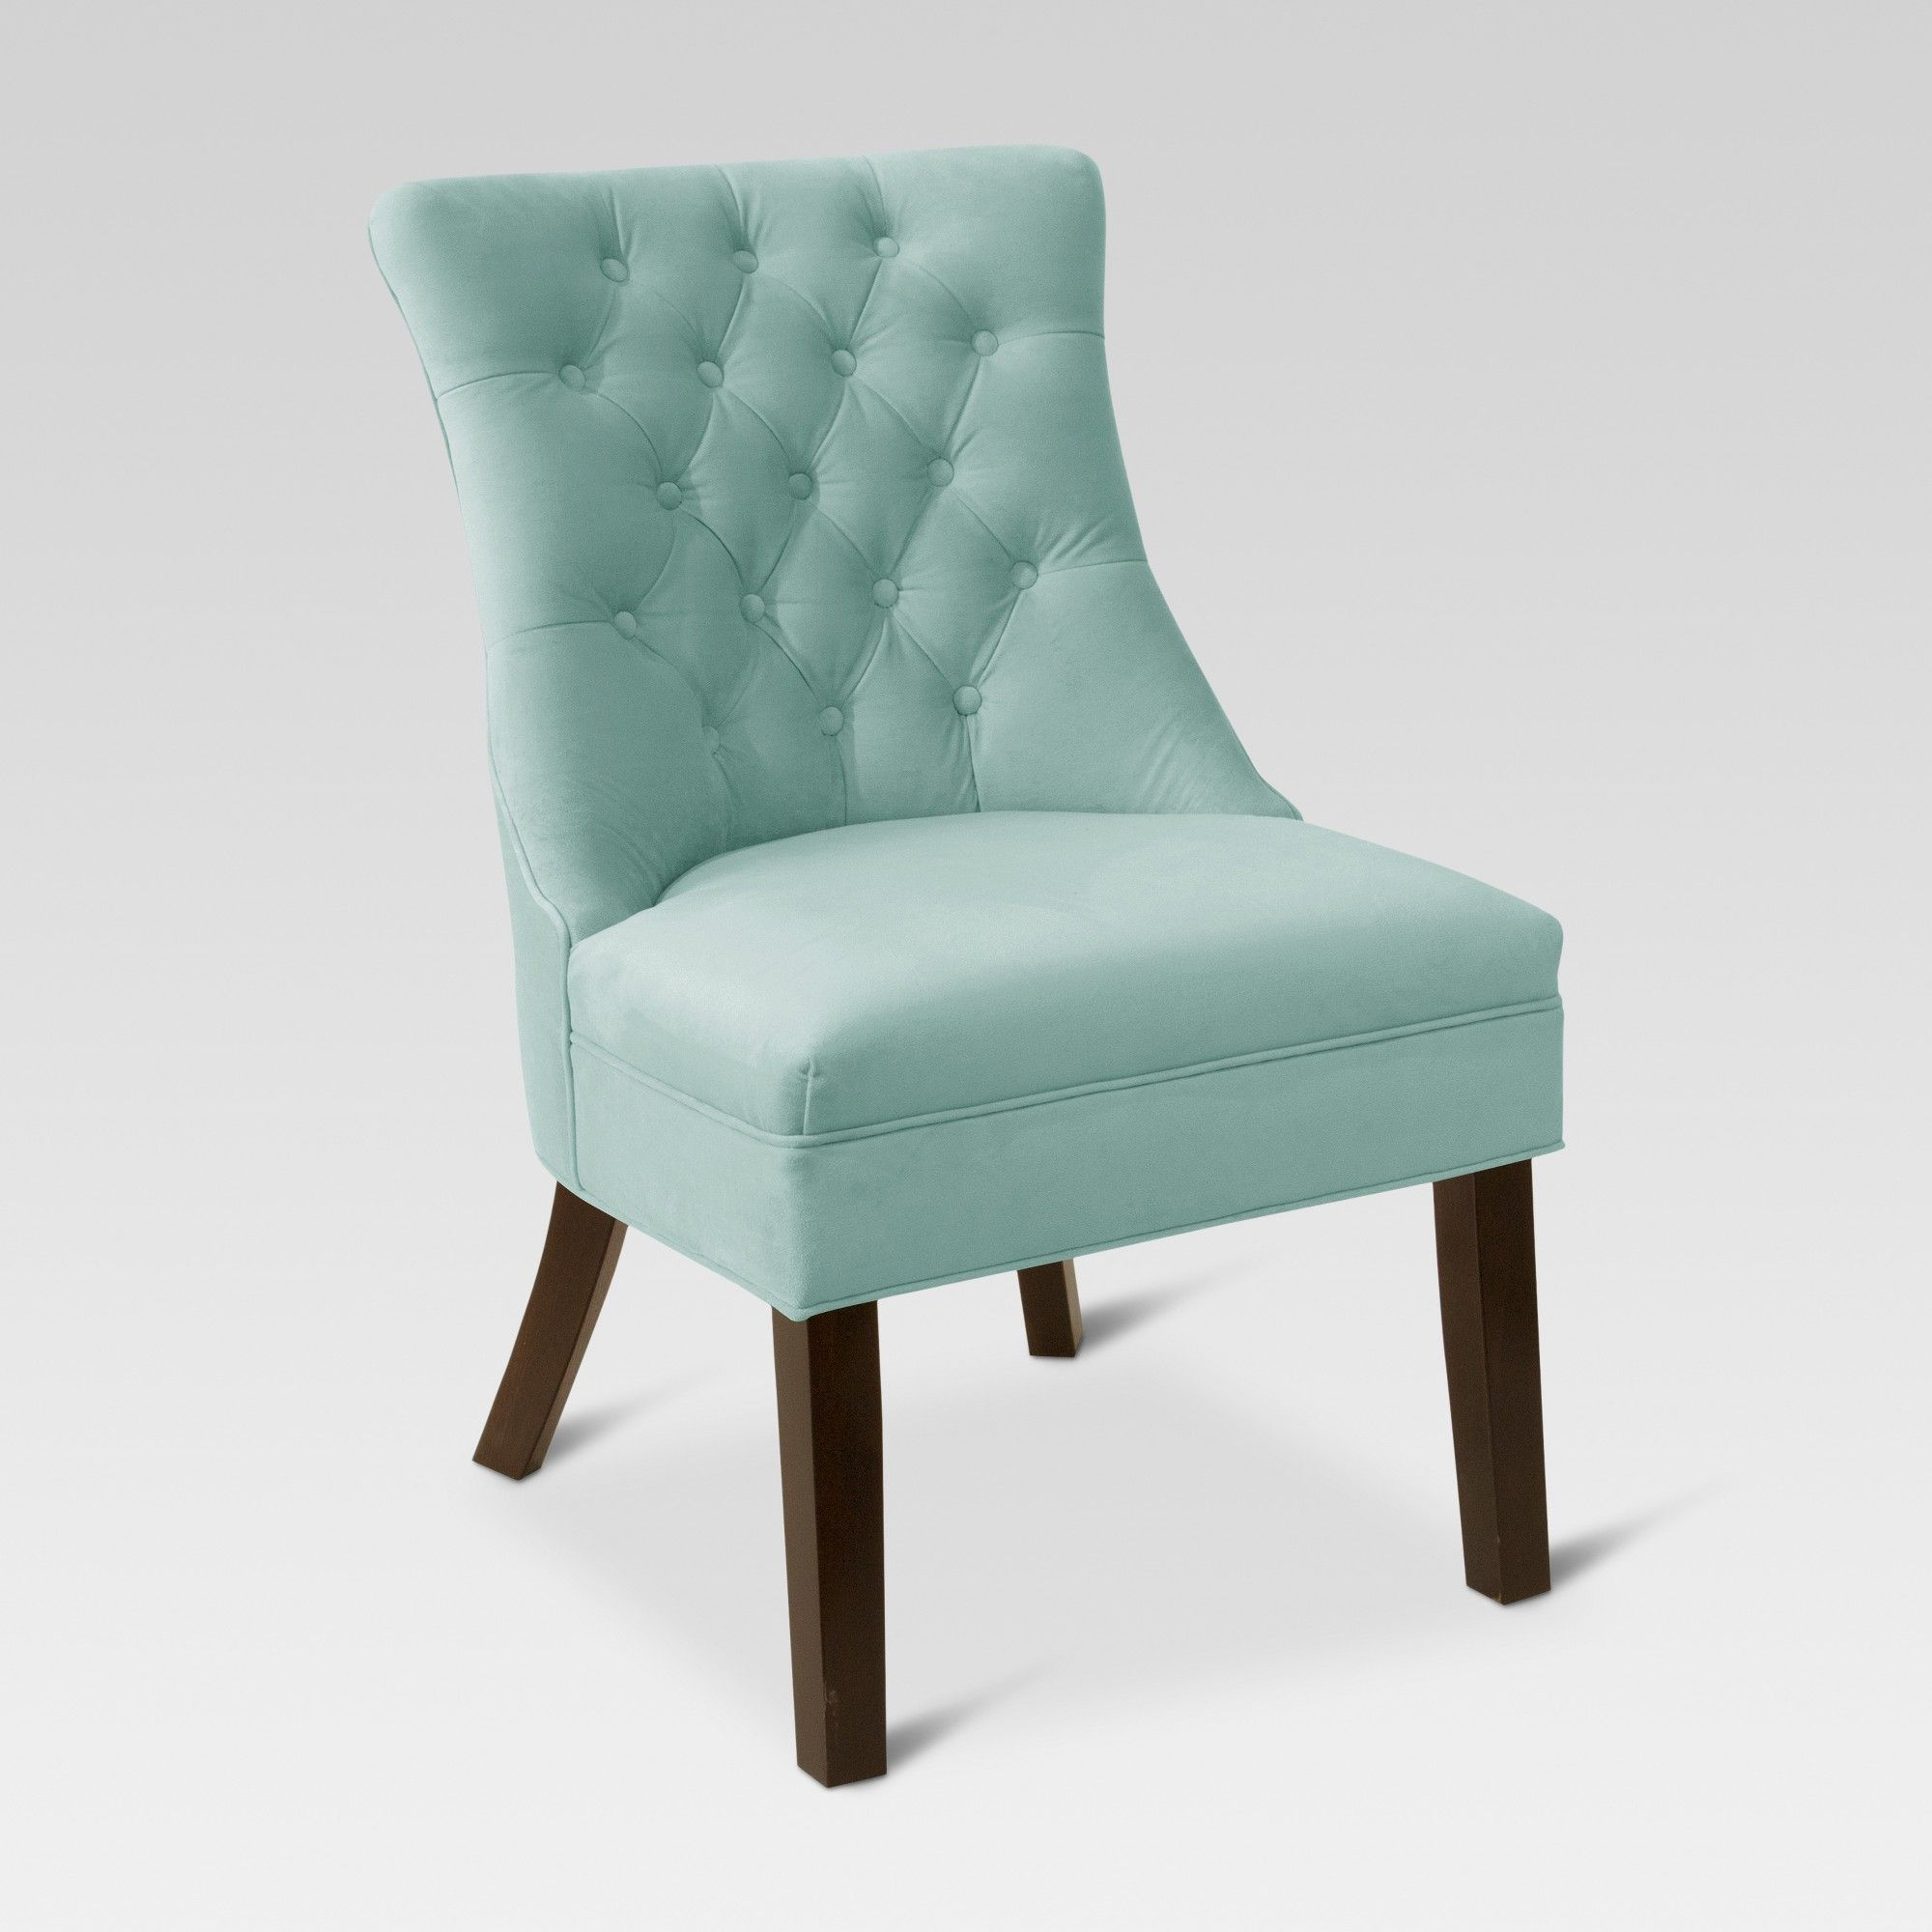 Best Accent Chairs Teal Threshold Blue Velvet Accent 400 x 300